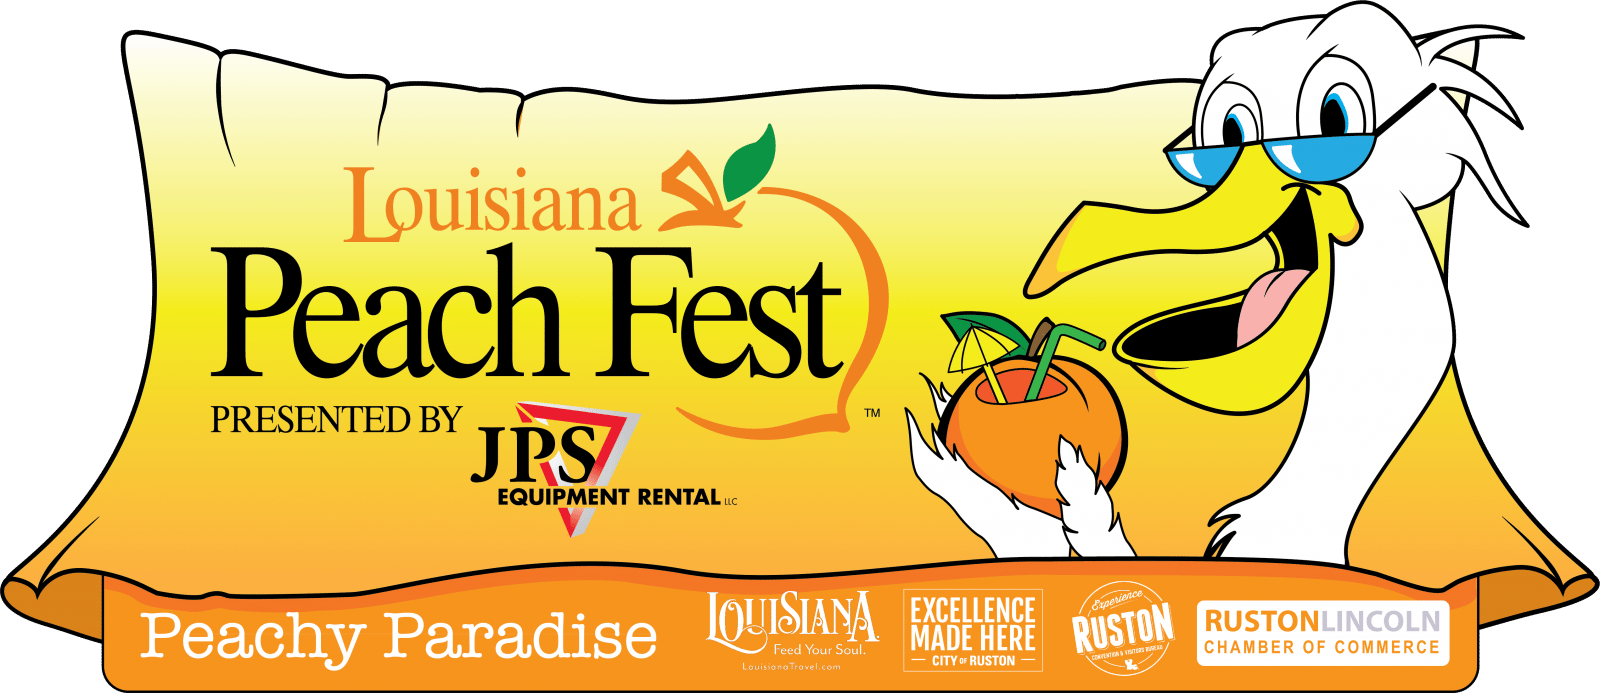 Louisiana Peach Fest